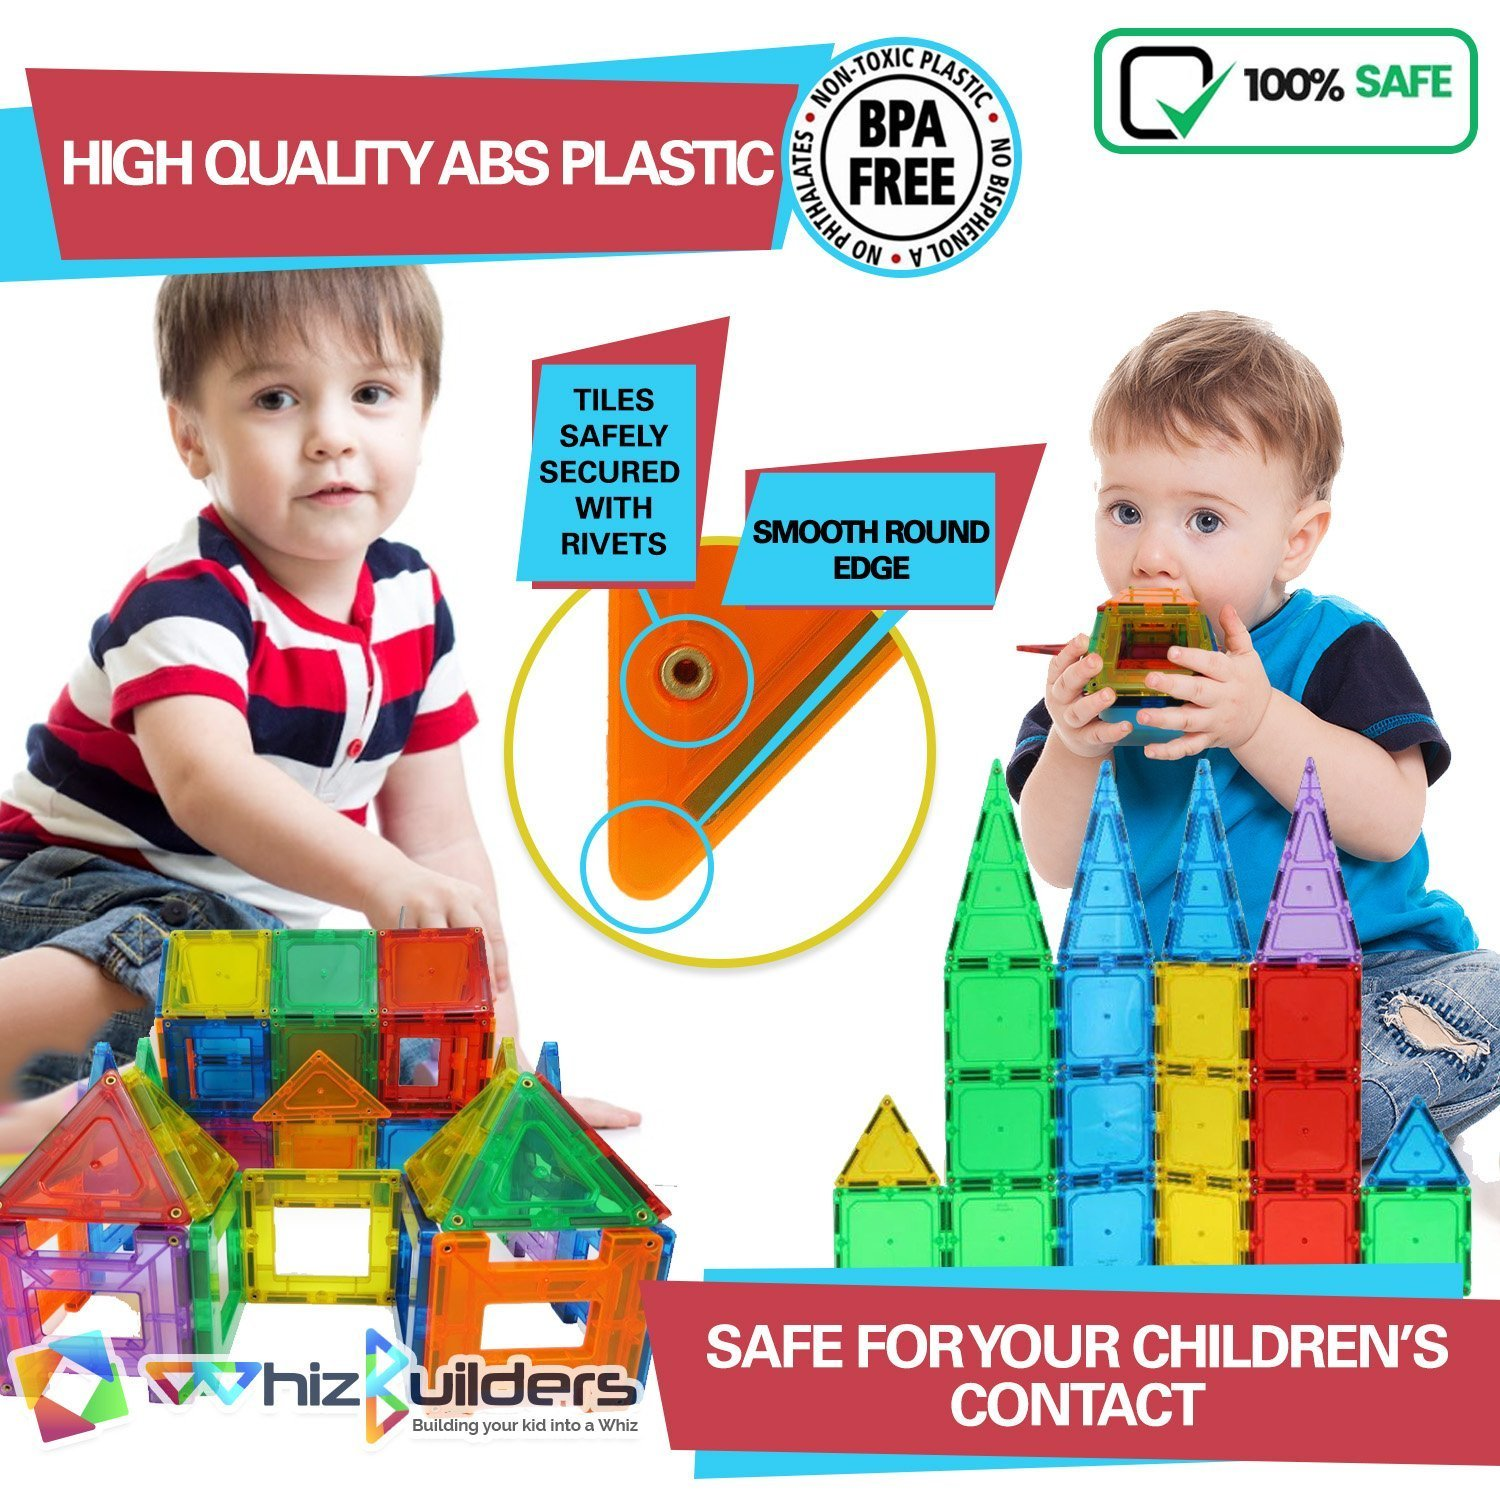 Magnetic Building Tiles Toys Set - Tiles Block Toy Kit for Kids - STEM Educational Construction Stacking Shapes - 60 Pieces by WhizBuilders (Image #2)